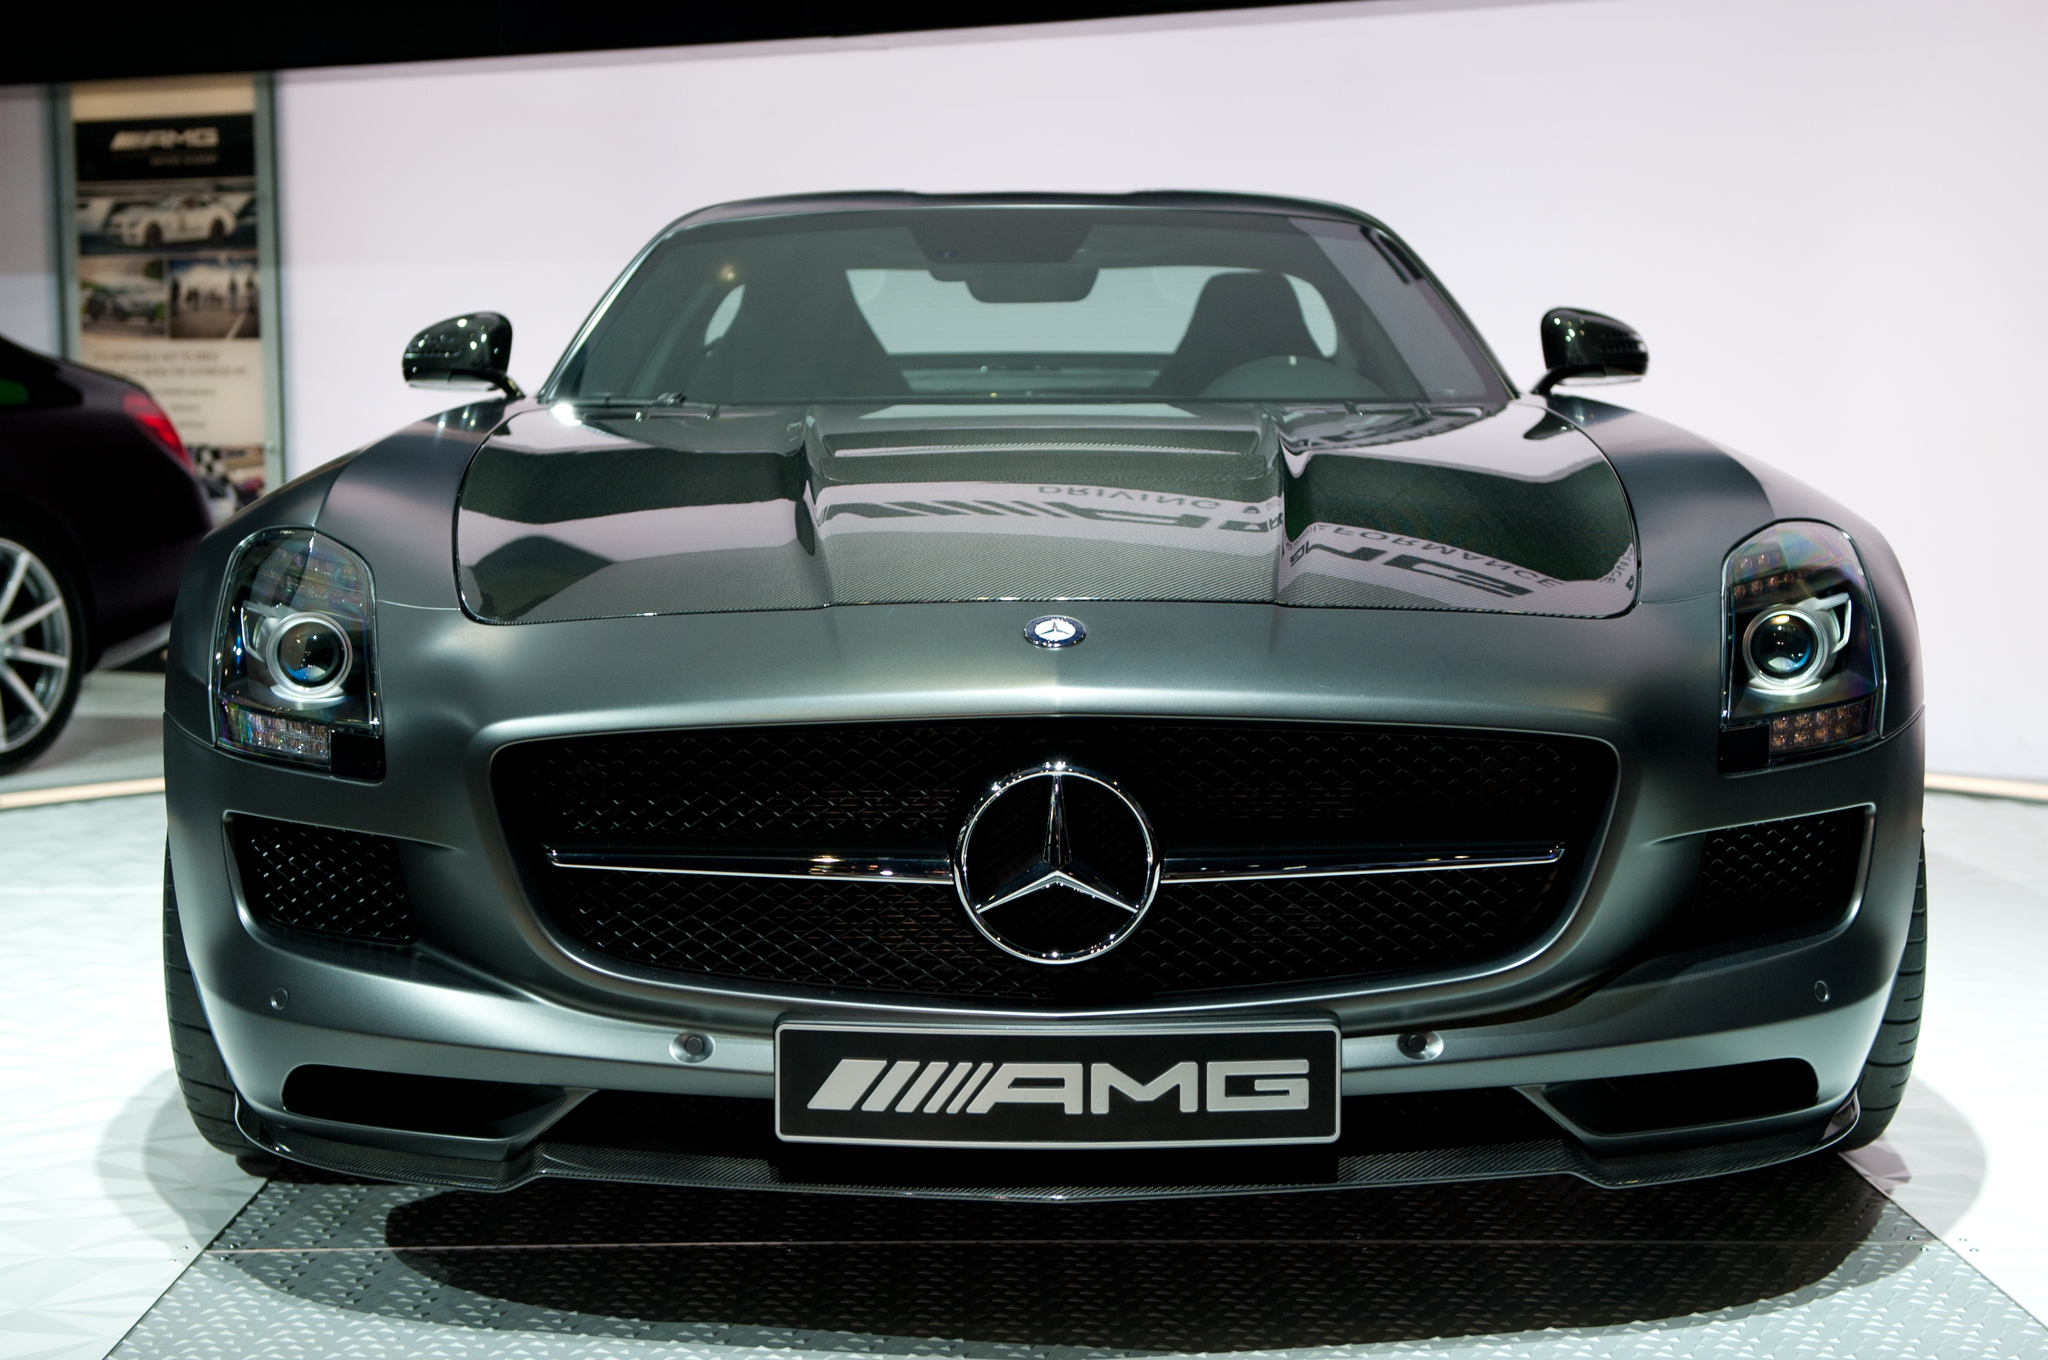 Mercedes-Benz Sls Amg Gt Final Edition #17